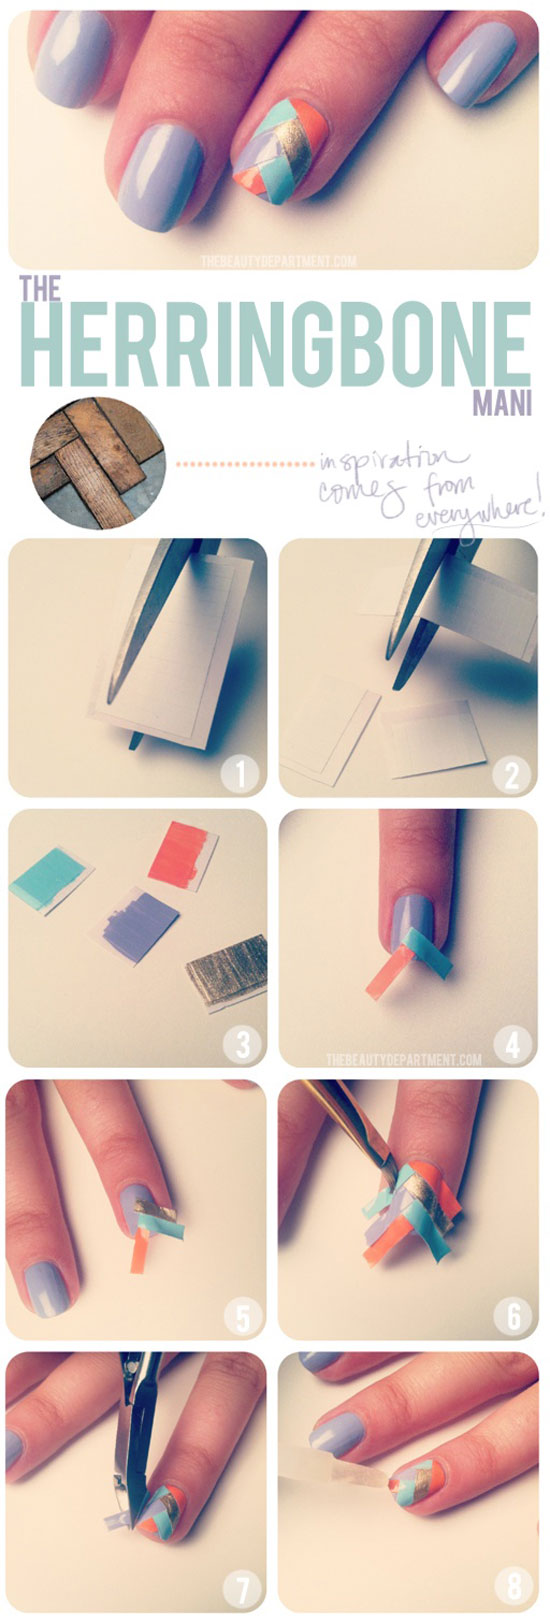 25-Best-Easy-Nail-Art-Tutorials-2012-For-Beginners-Learners-3